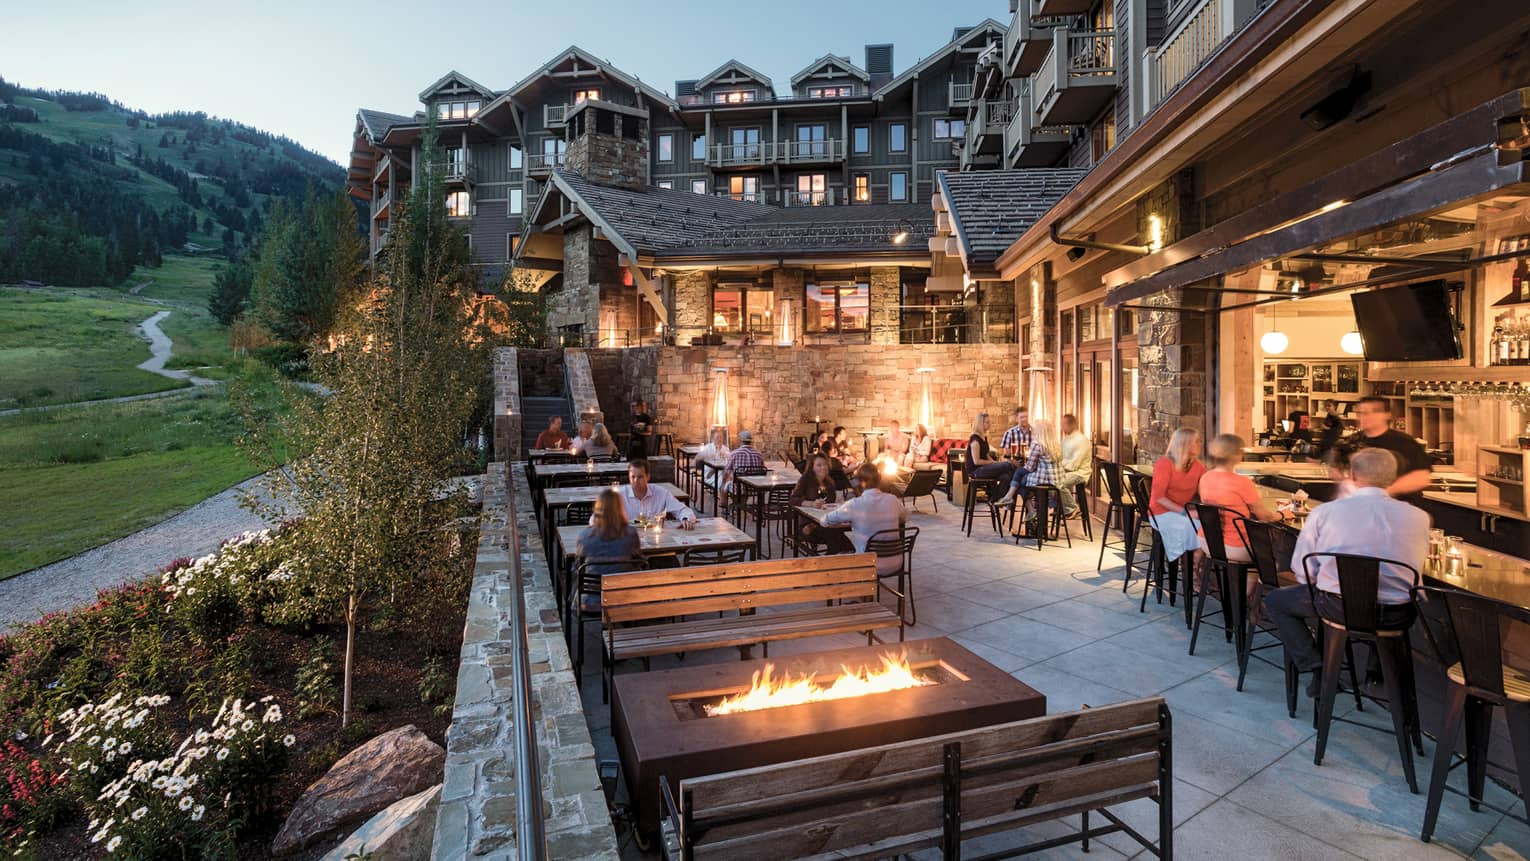 Westbank Grill at Four Seasons Jackson Hole Has Great Views